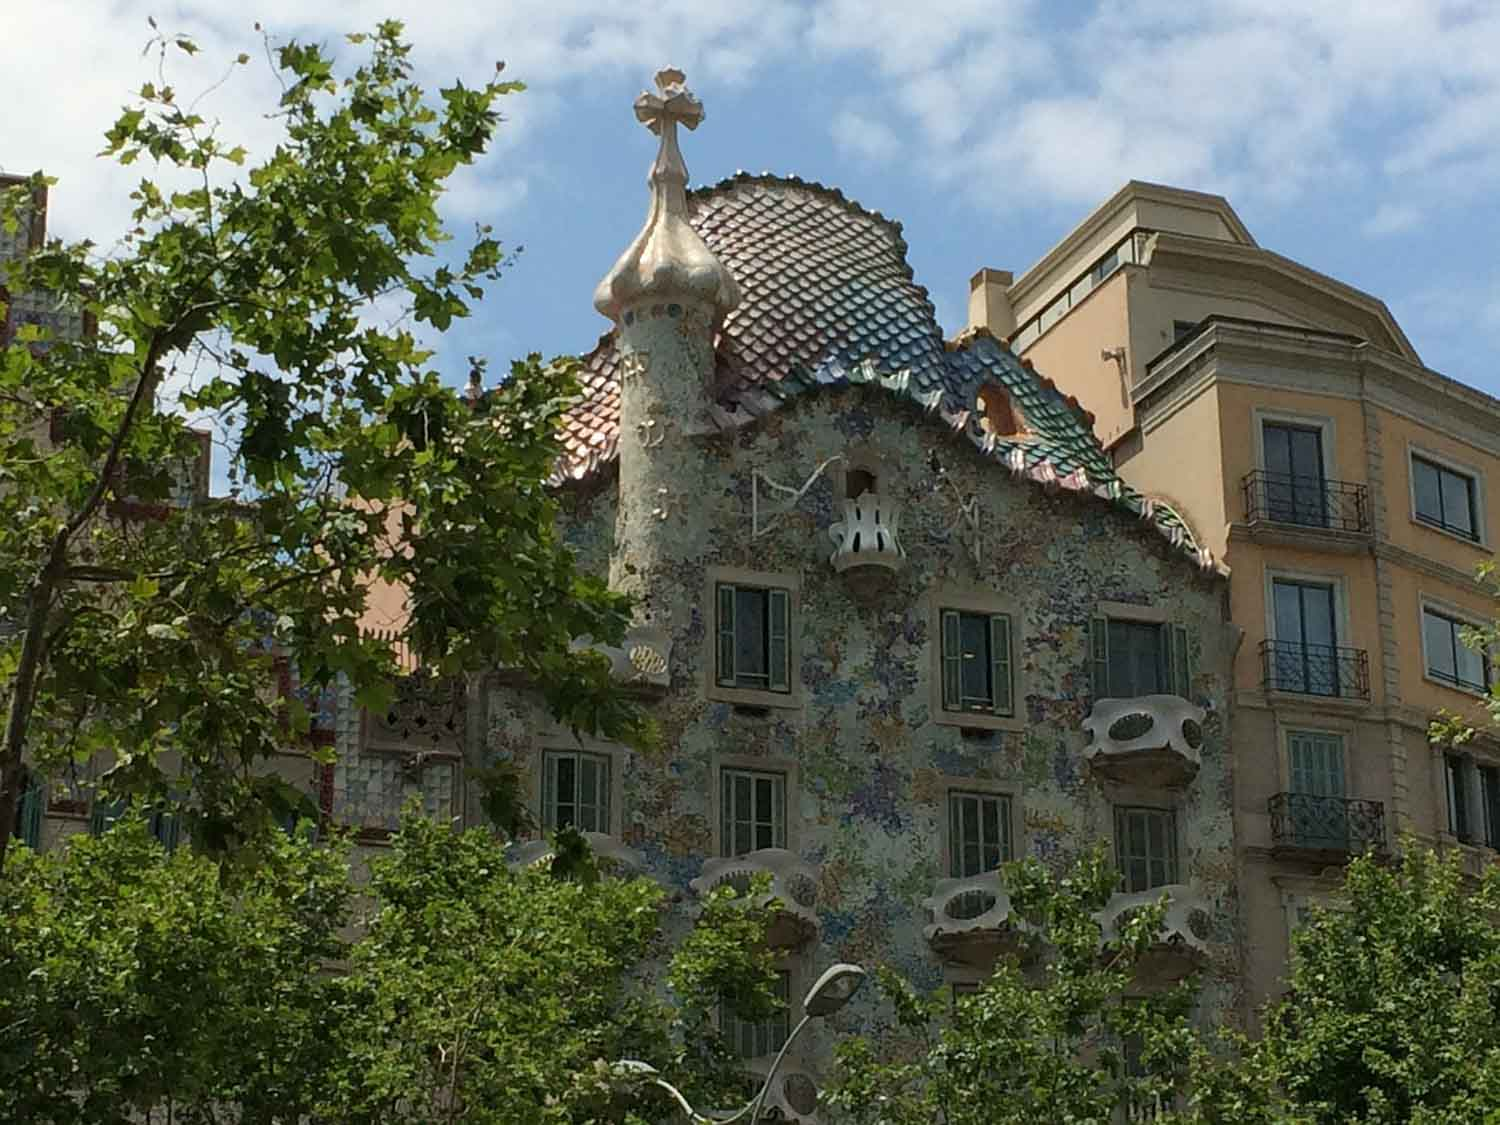 Casa Batlló was a private house that Gaudi was commissioned to redesign.